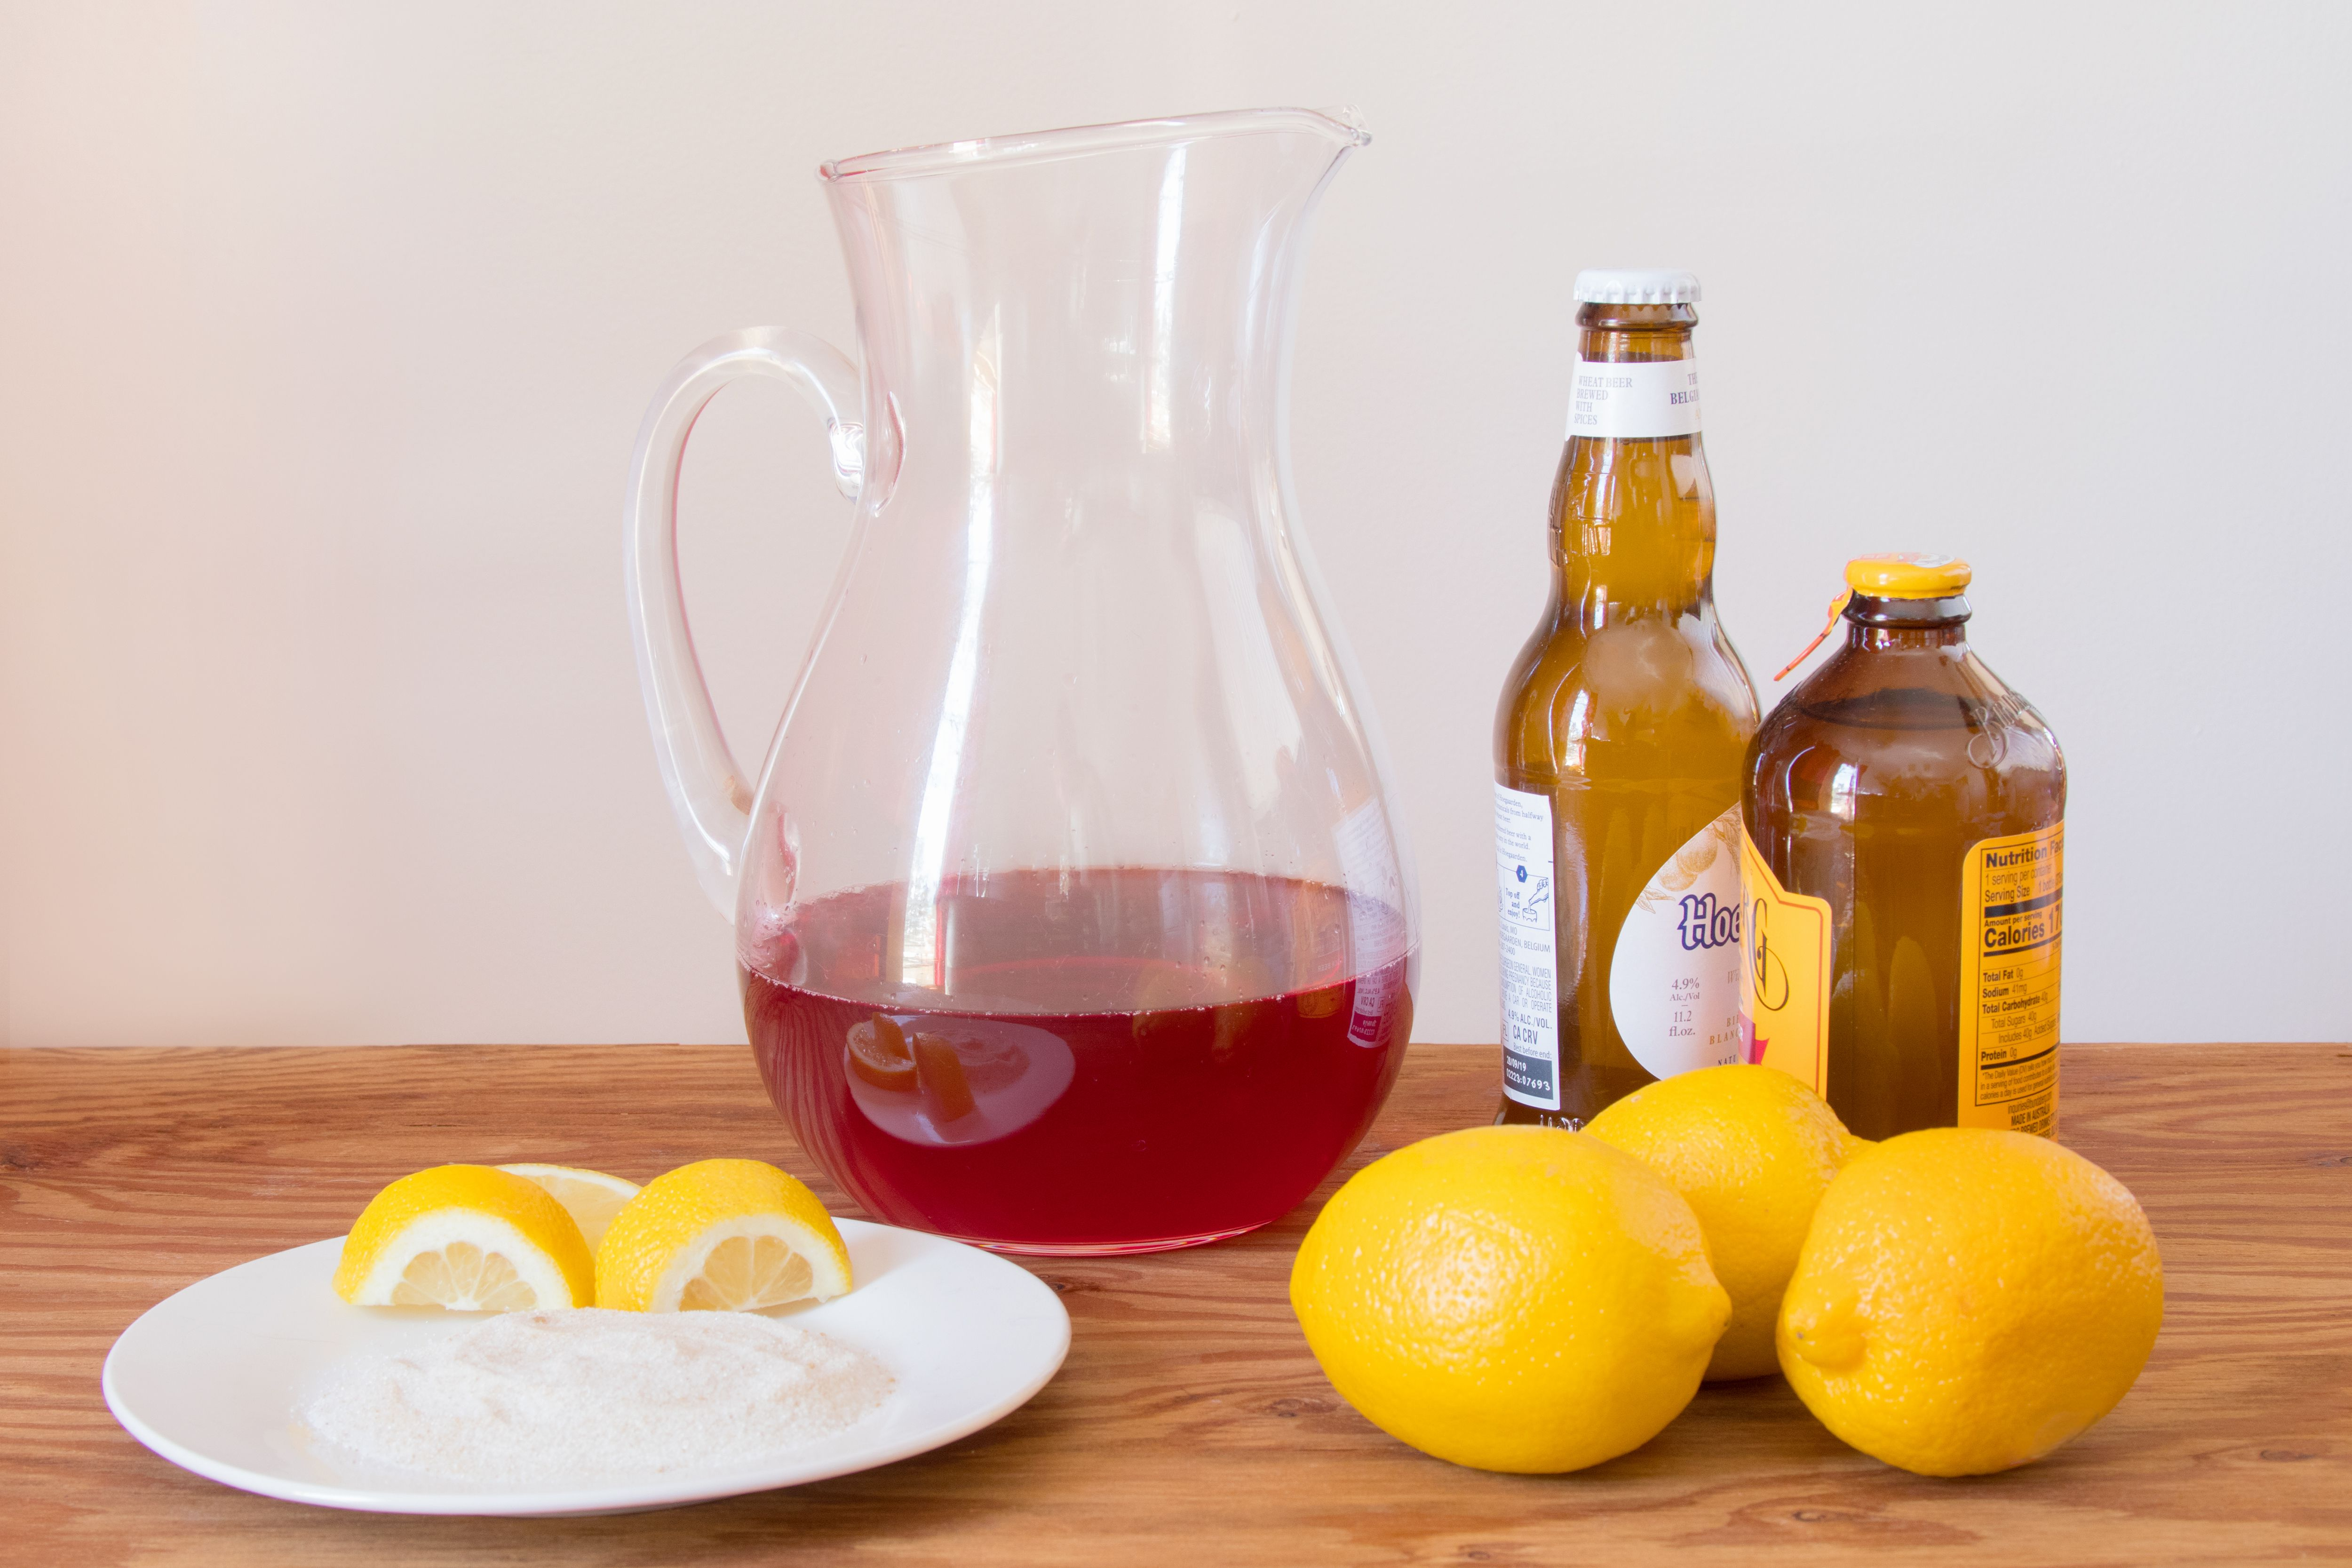 Ingredients for a Cranberry Ginger Shandy